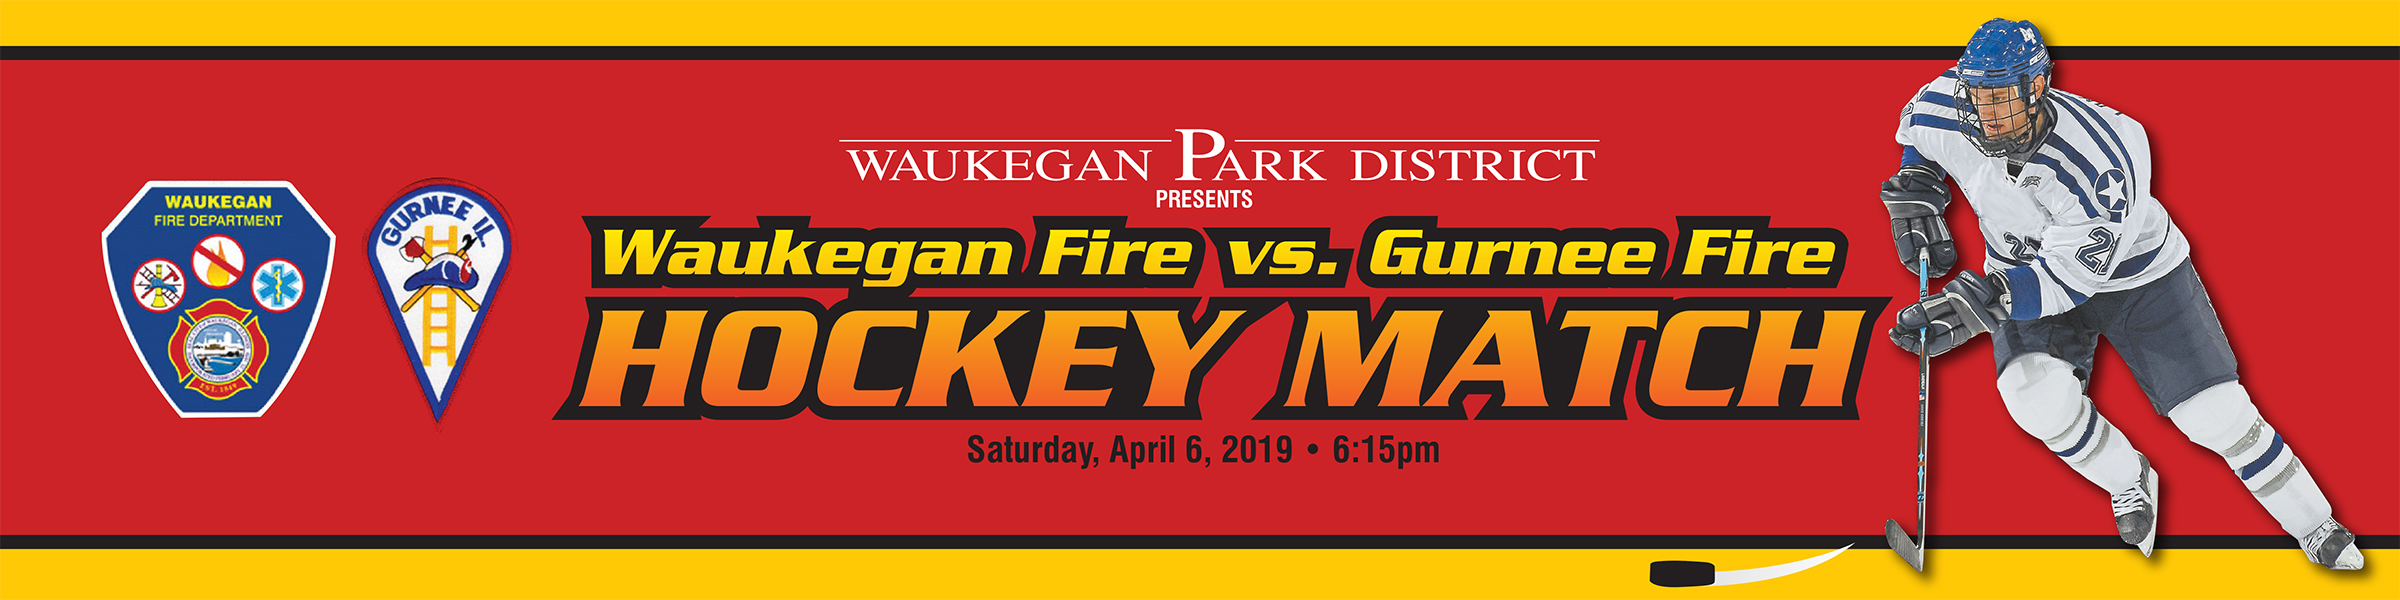 2019 Waukegan Fire vs. Gurnee Fire Hockey Match